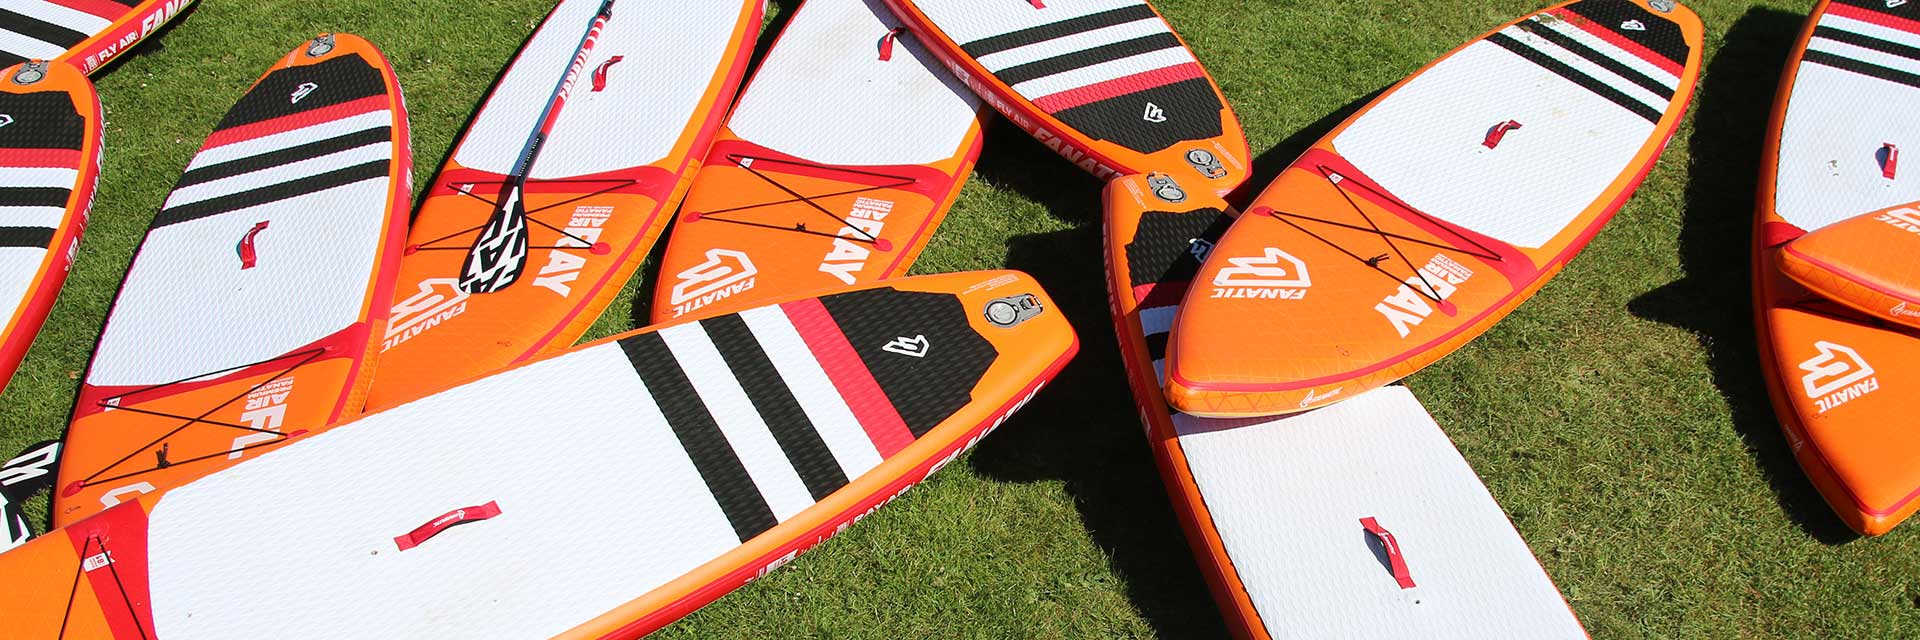 SUP-school-beste-materiaal-boards